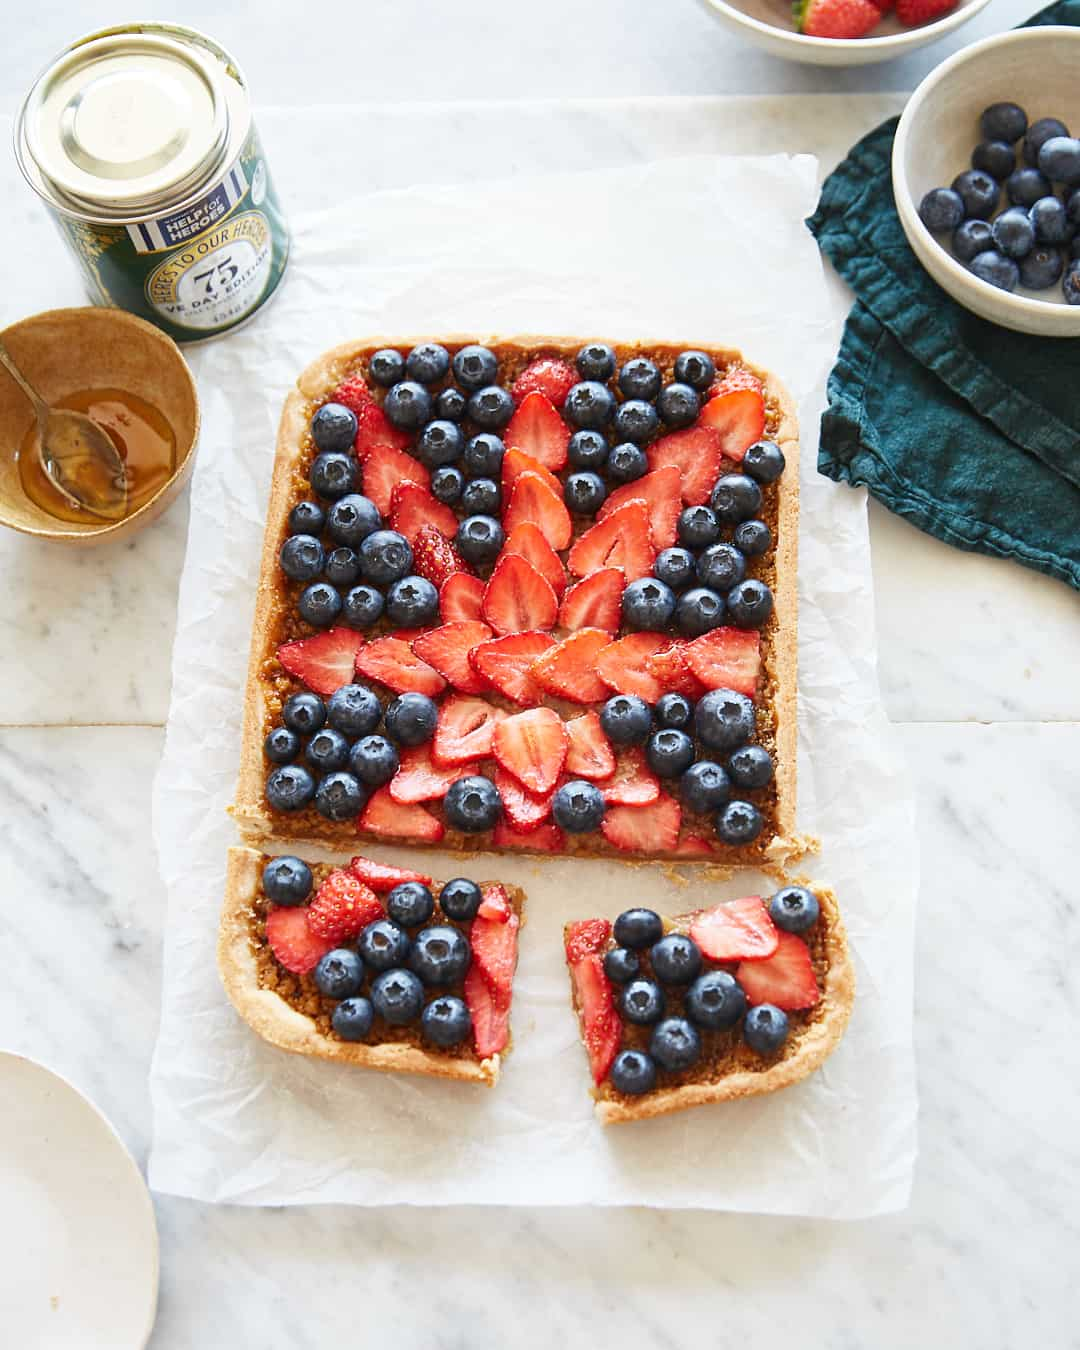 a treacle tart topped with berries in the shape of the union jack